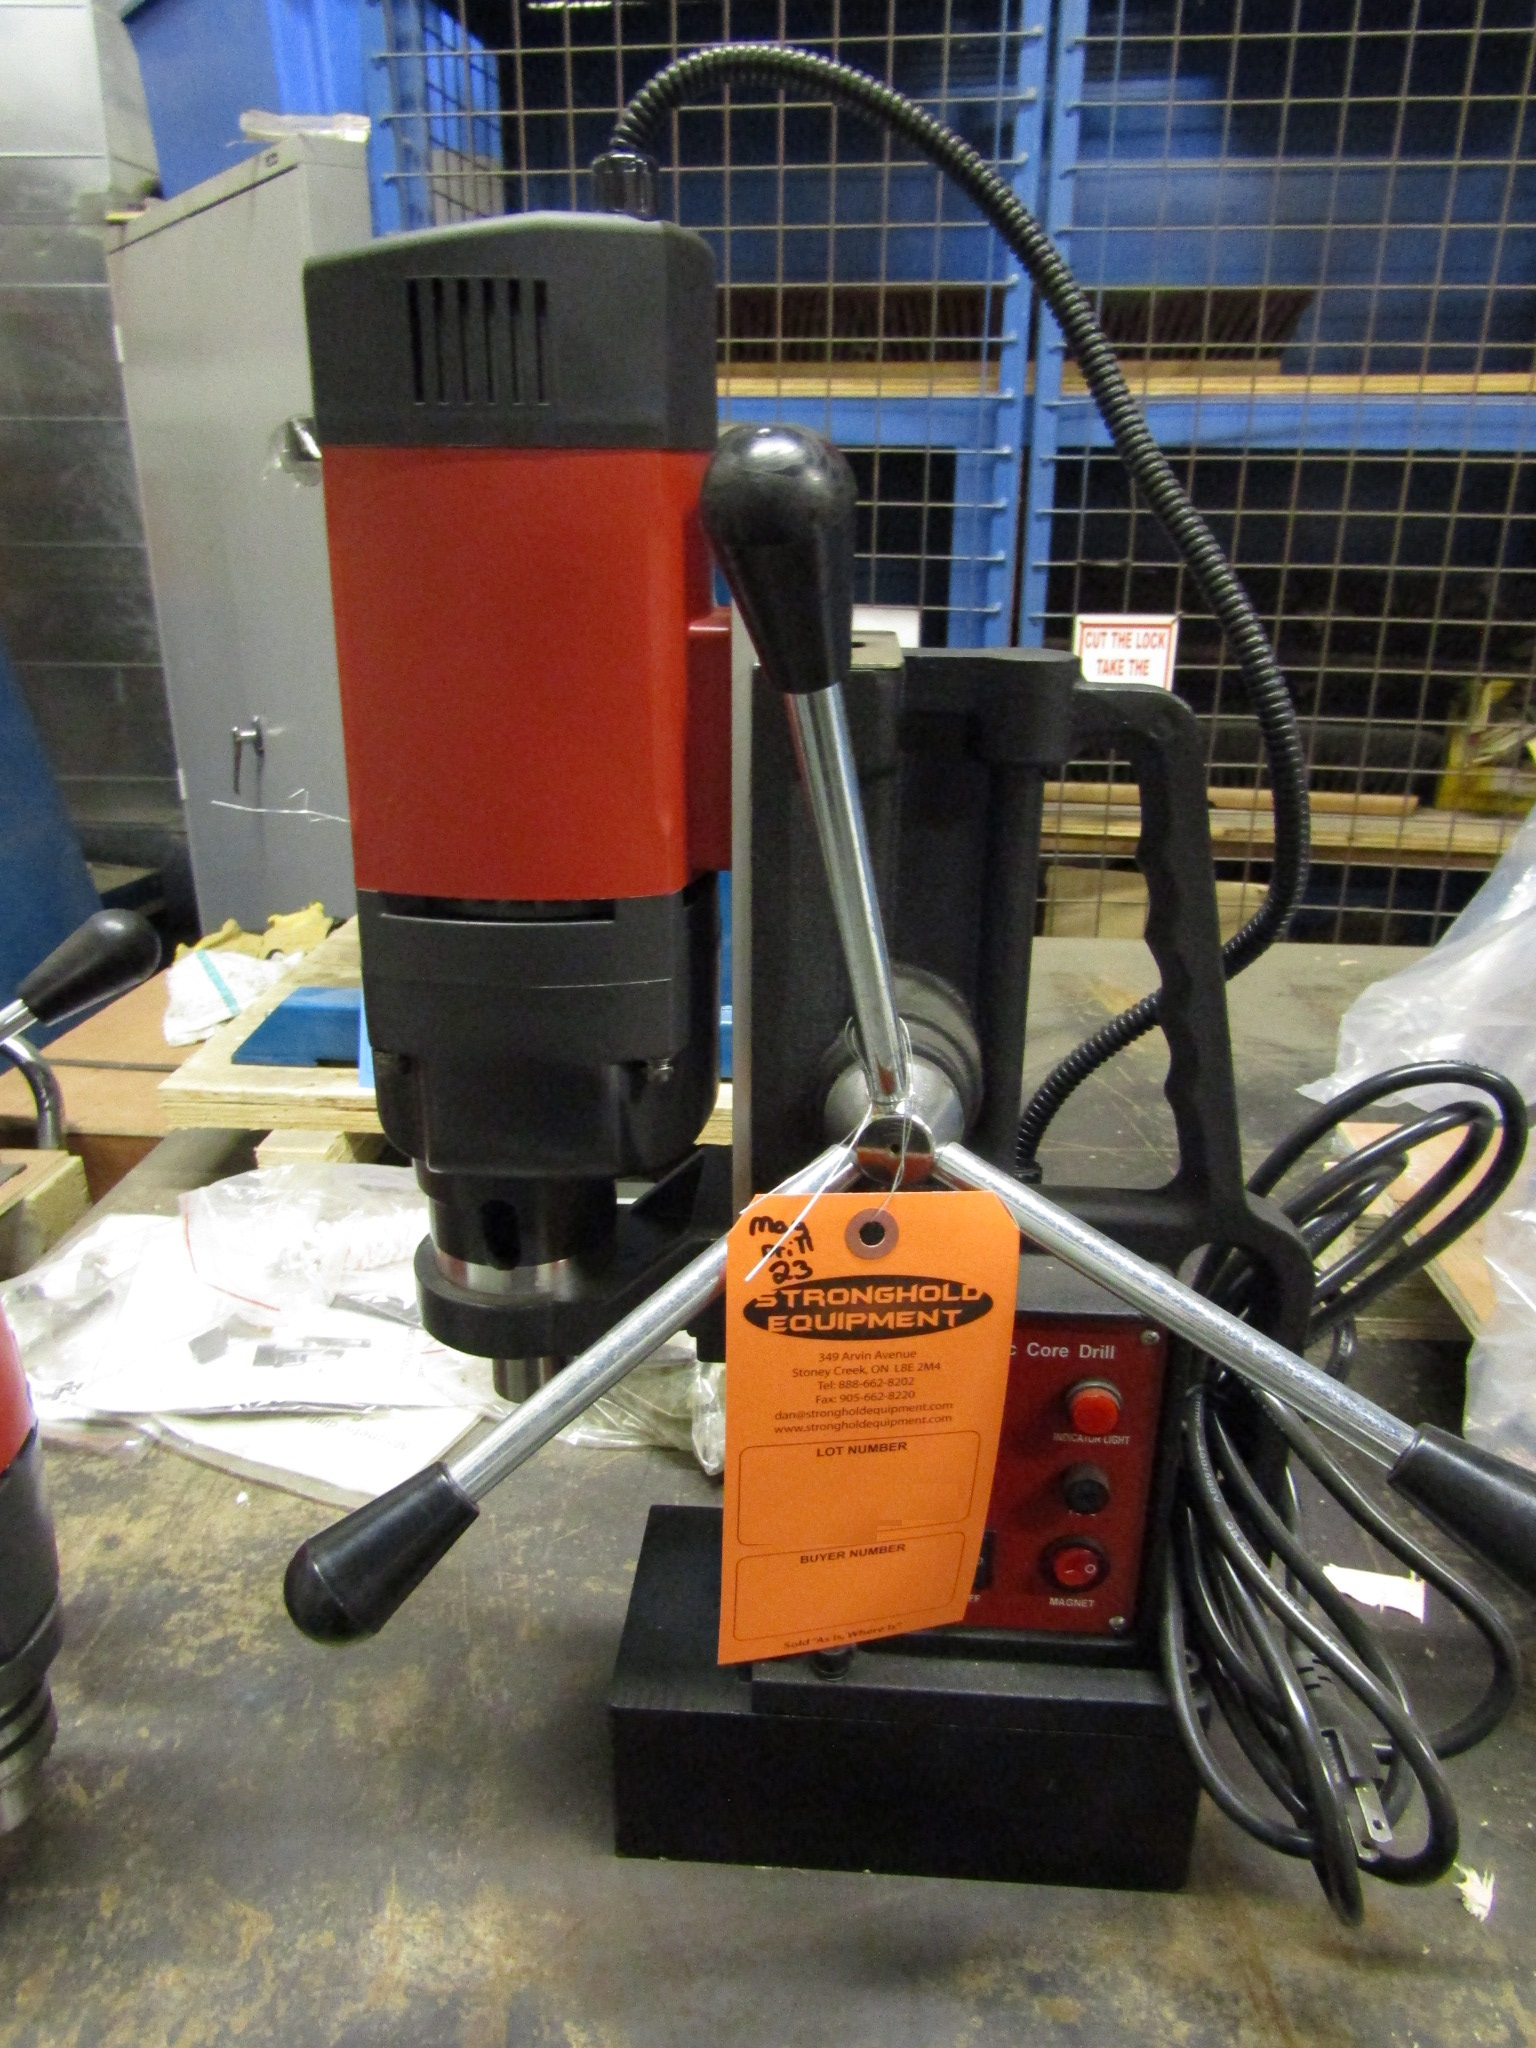 """Lot 59 - Mag Drill with 5/8"""" Chuck - 0.9"""" drilling range - Magnetic CORE DRILL 110V - MINT & UNUSED"""